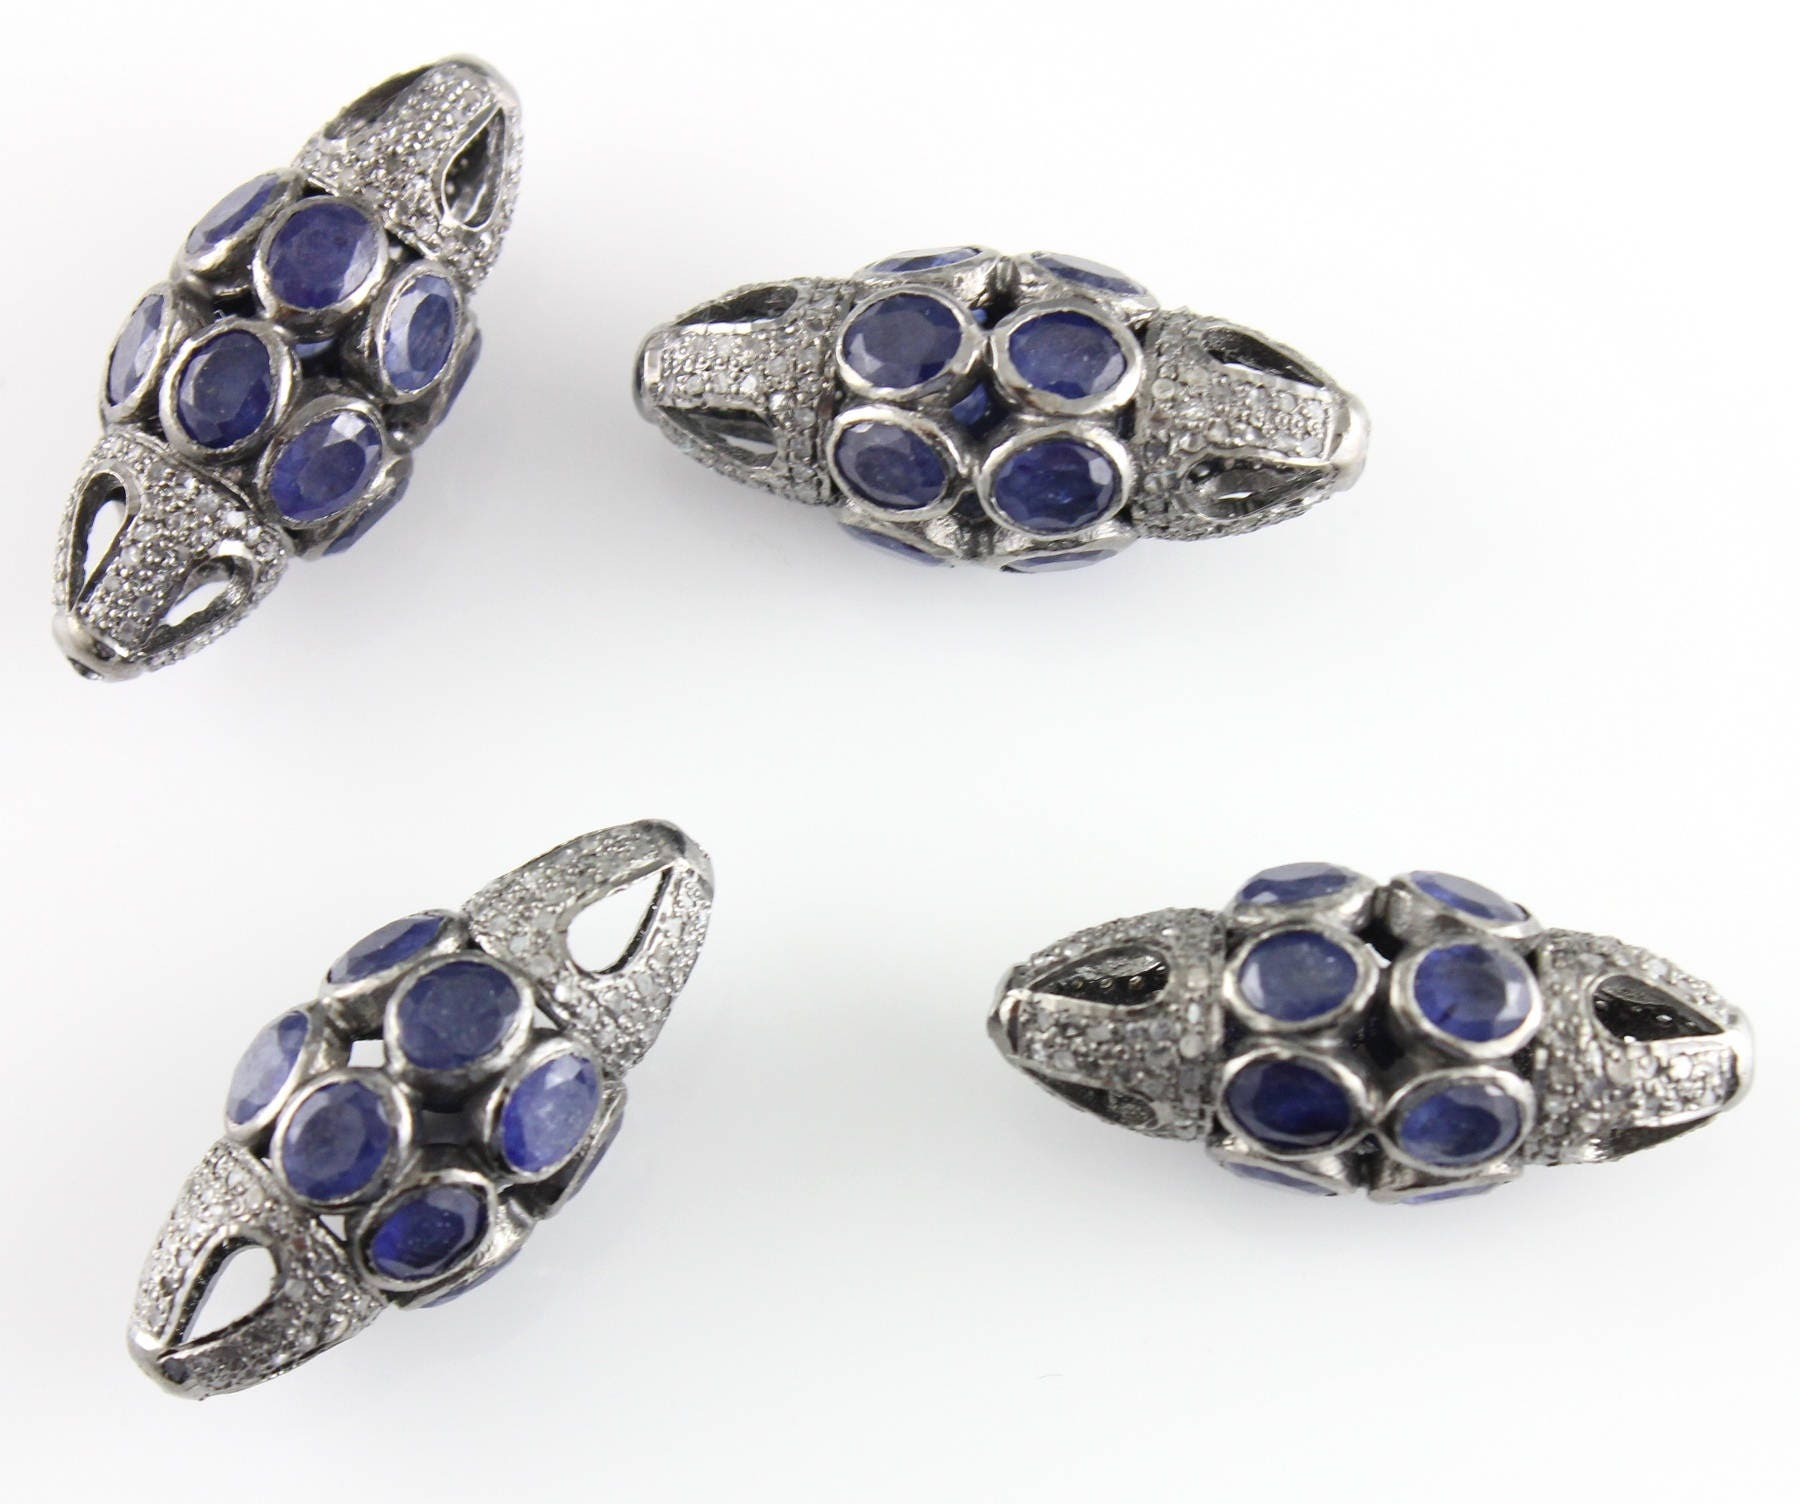 Beaded Diamond: Pave Diamond Bead Pave Diamond & Sapphire Beads Nugget